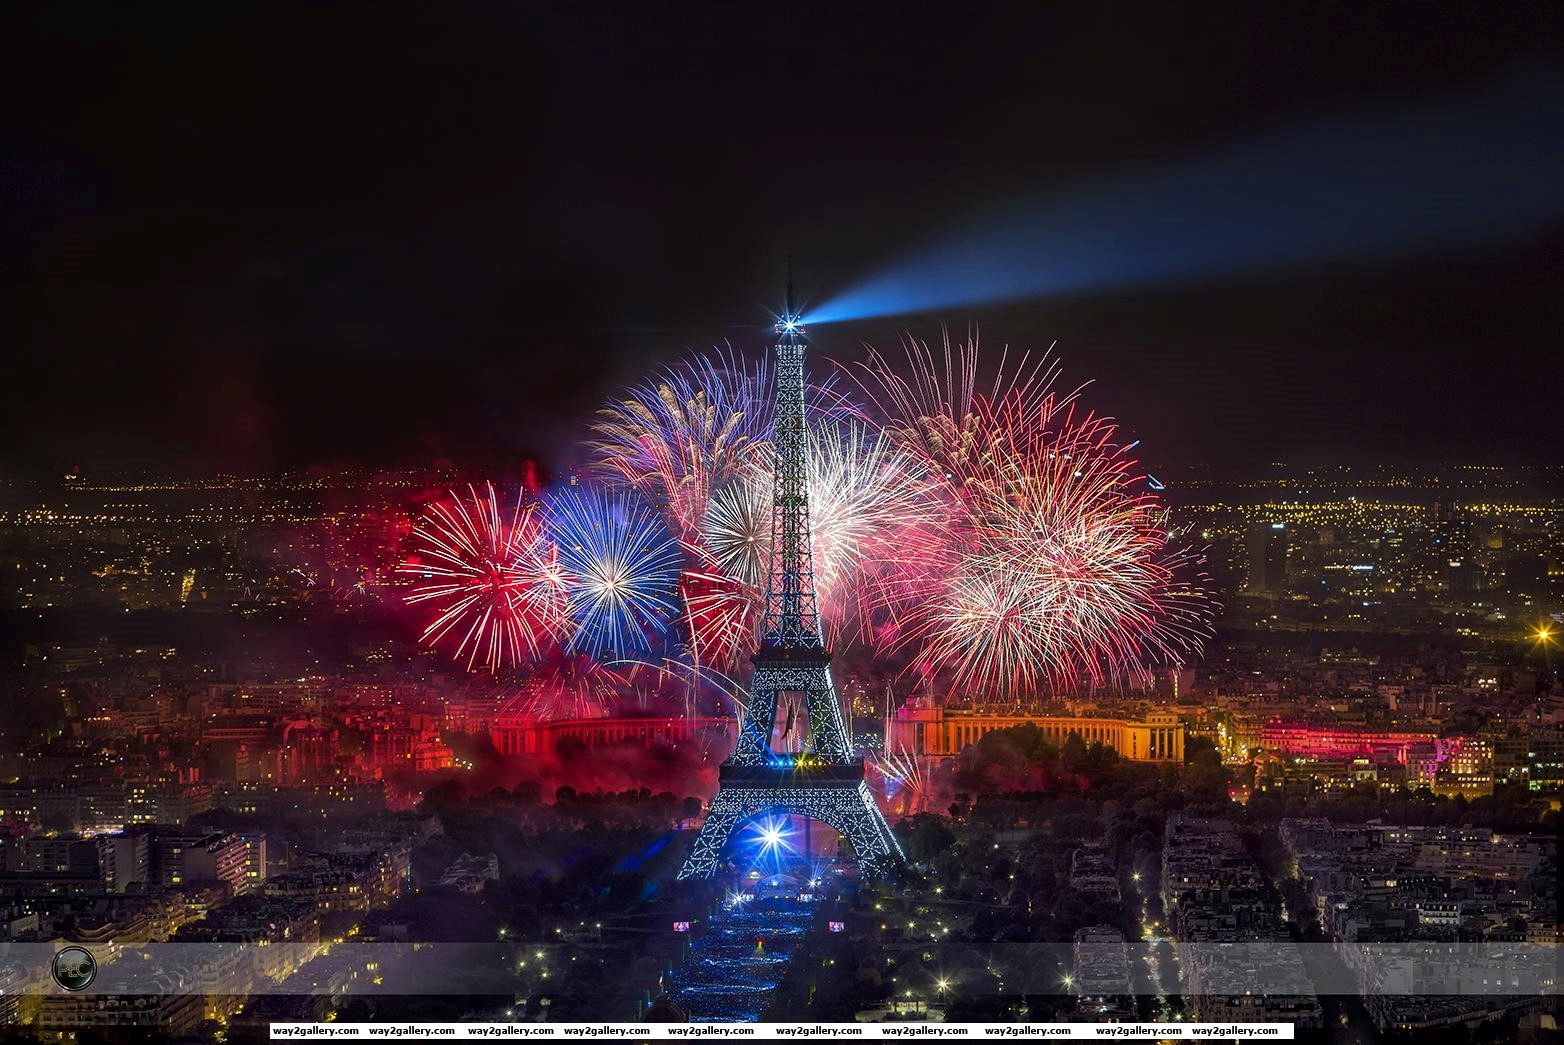 Phenomenal picture of the bastille day fireworks at the eiffel tower in paris france